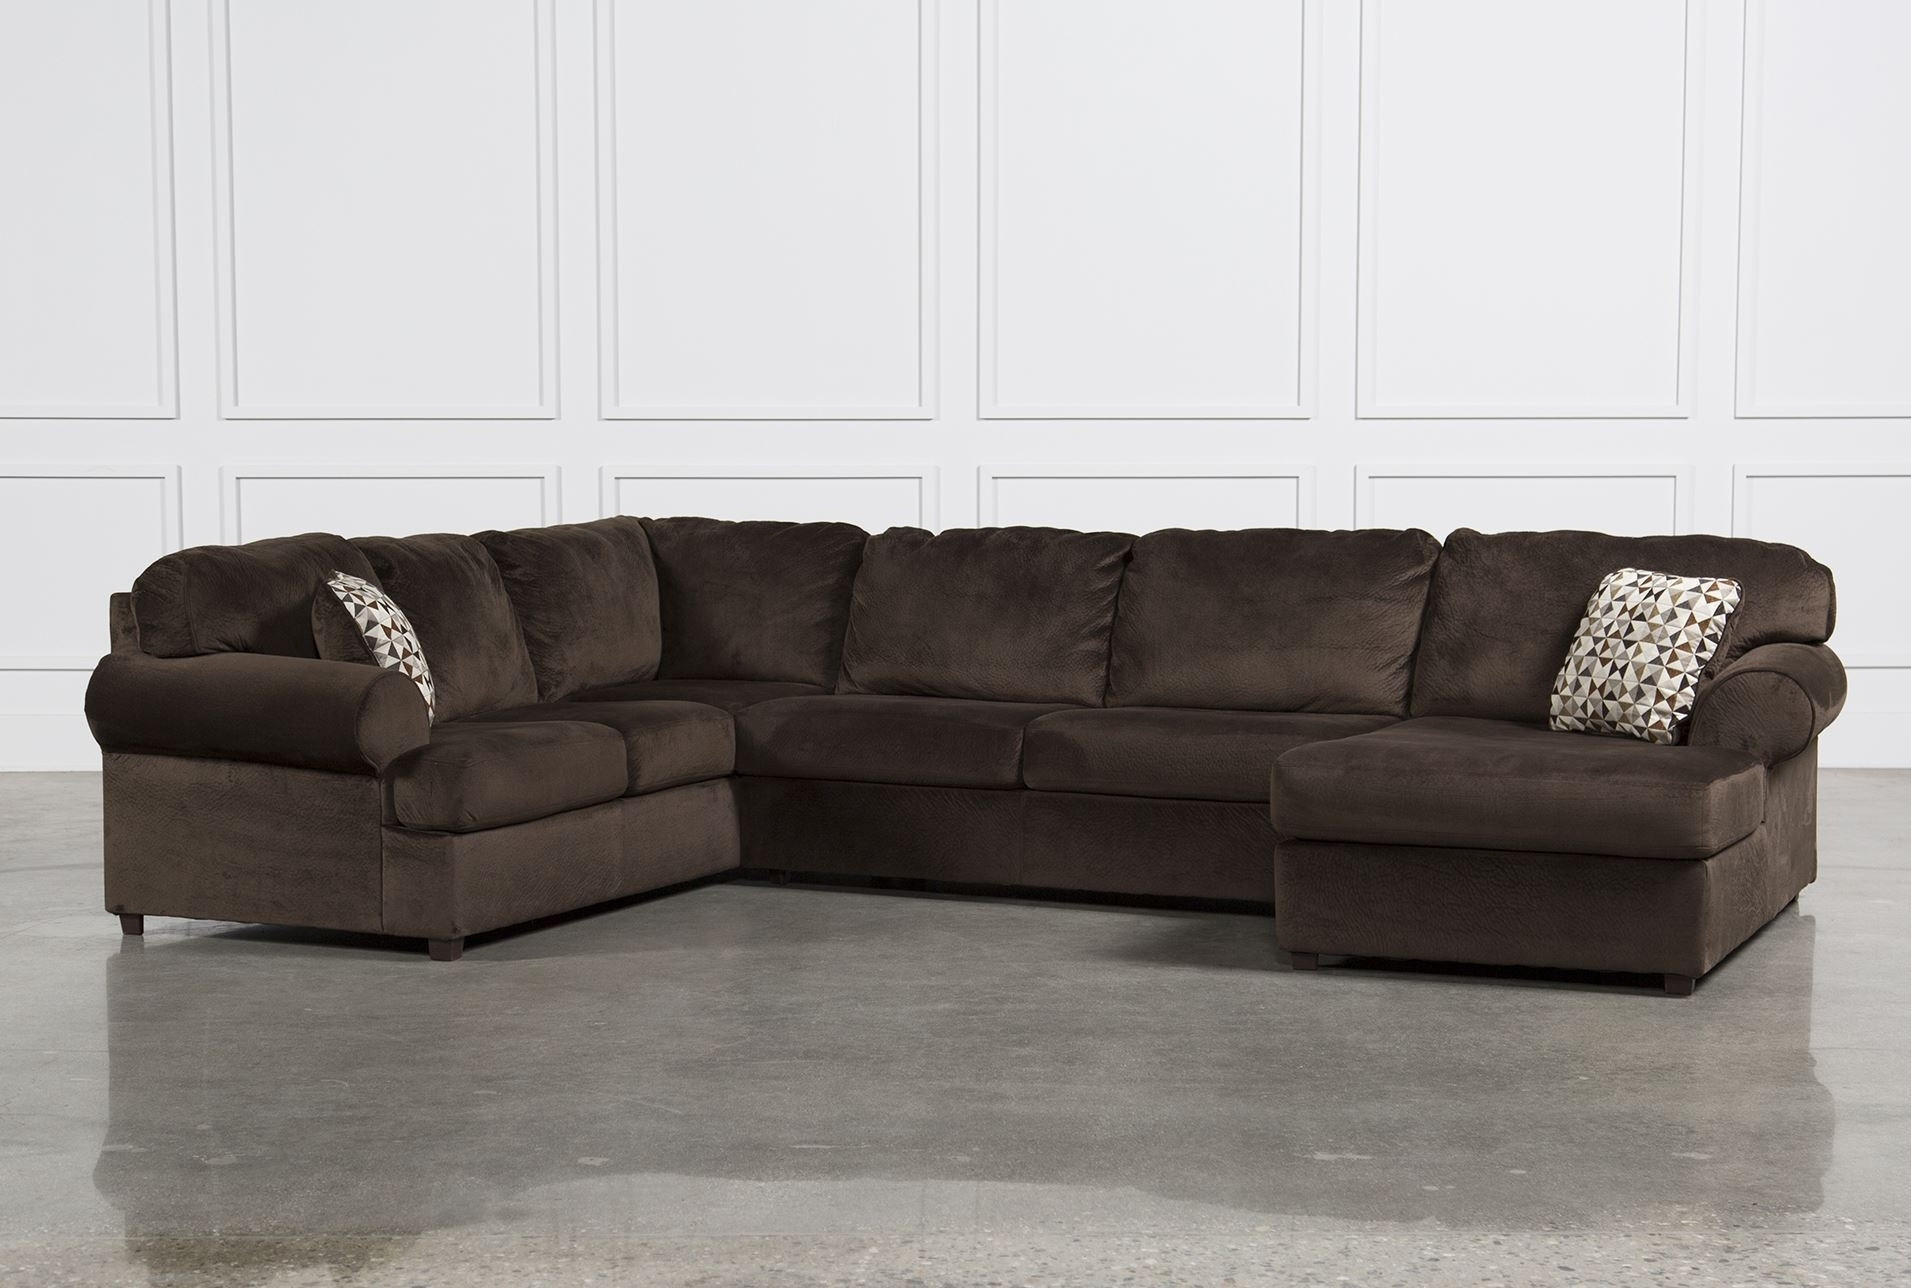 Living Room: Elegant Ashley Leather Sectional Sofa For Comfortable Inside Lucy Grey 2 Piece Sleeper Sectionals With Raf Chaise (View 12 of 25)